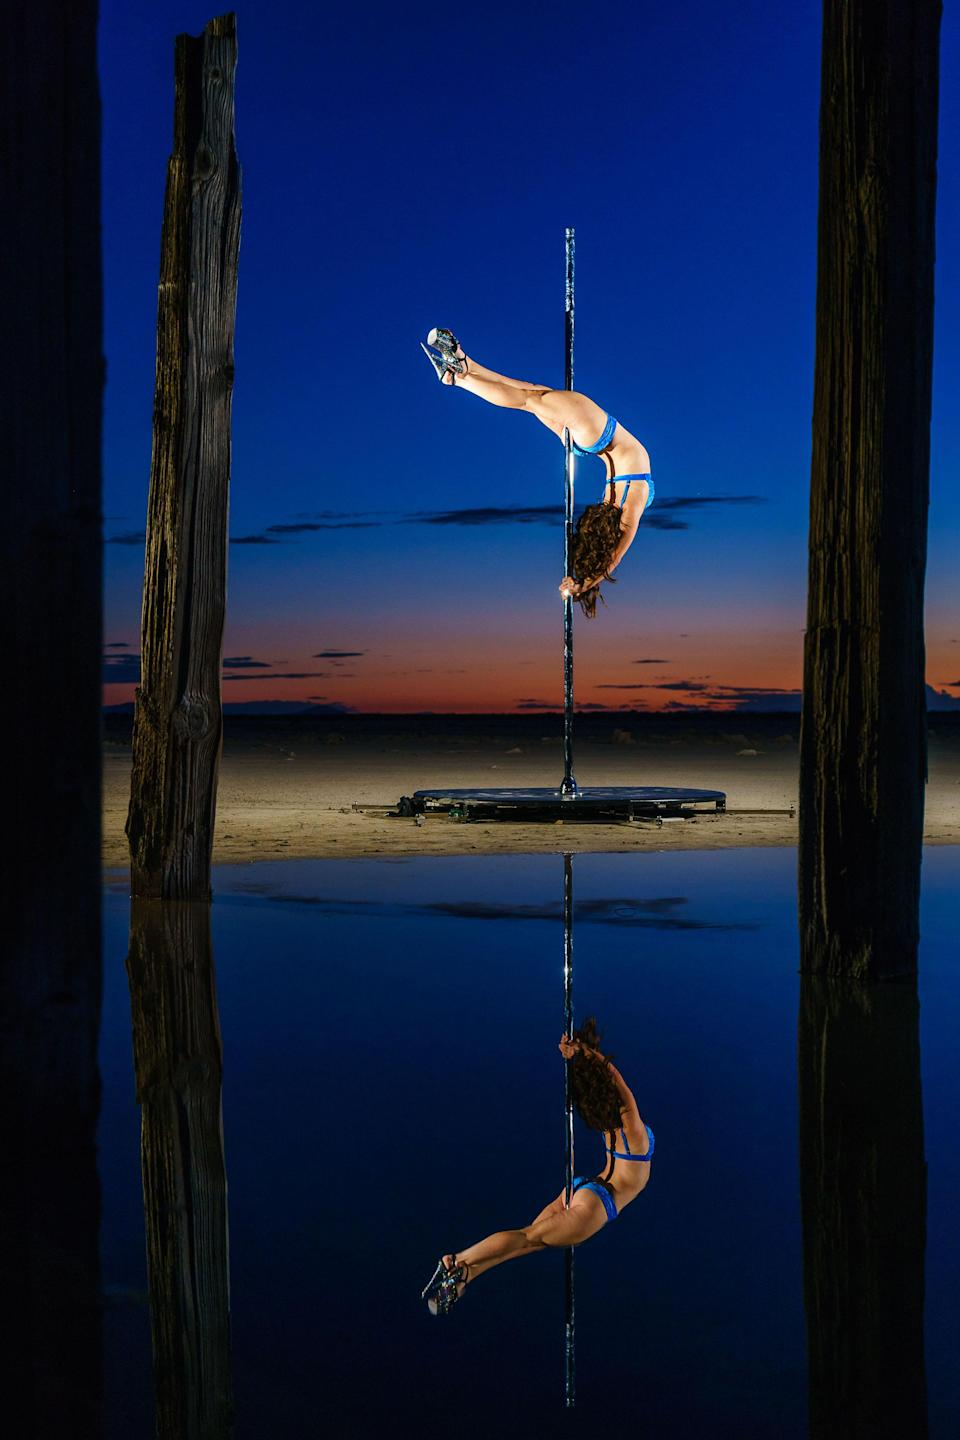 <p>Model Amy Connolly dances on a pole against a beautiful starry backdrop. (Photo: Casey Grimley/Caters News) </p>